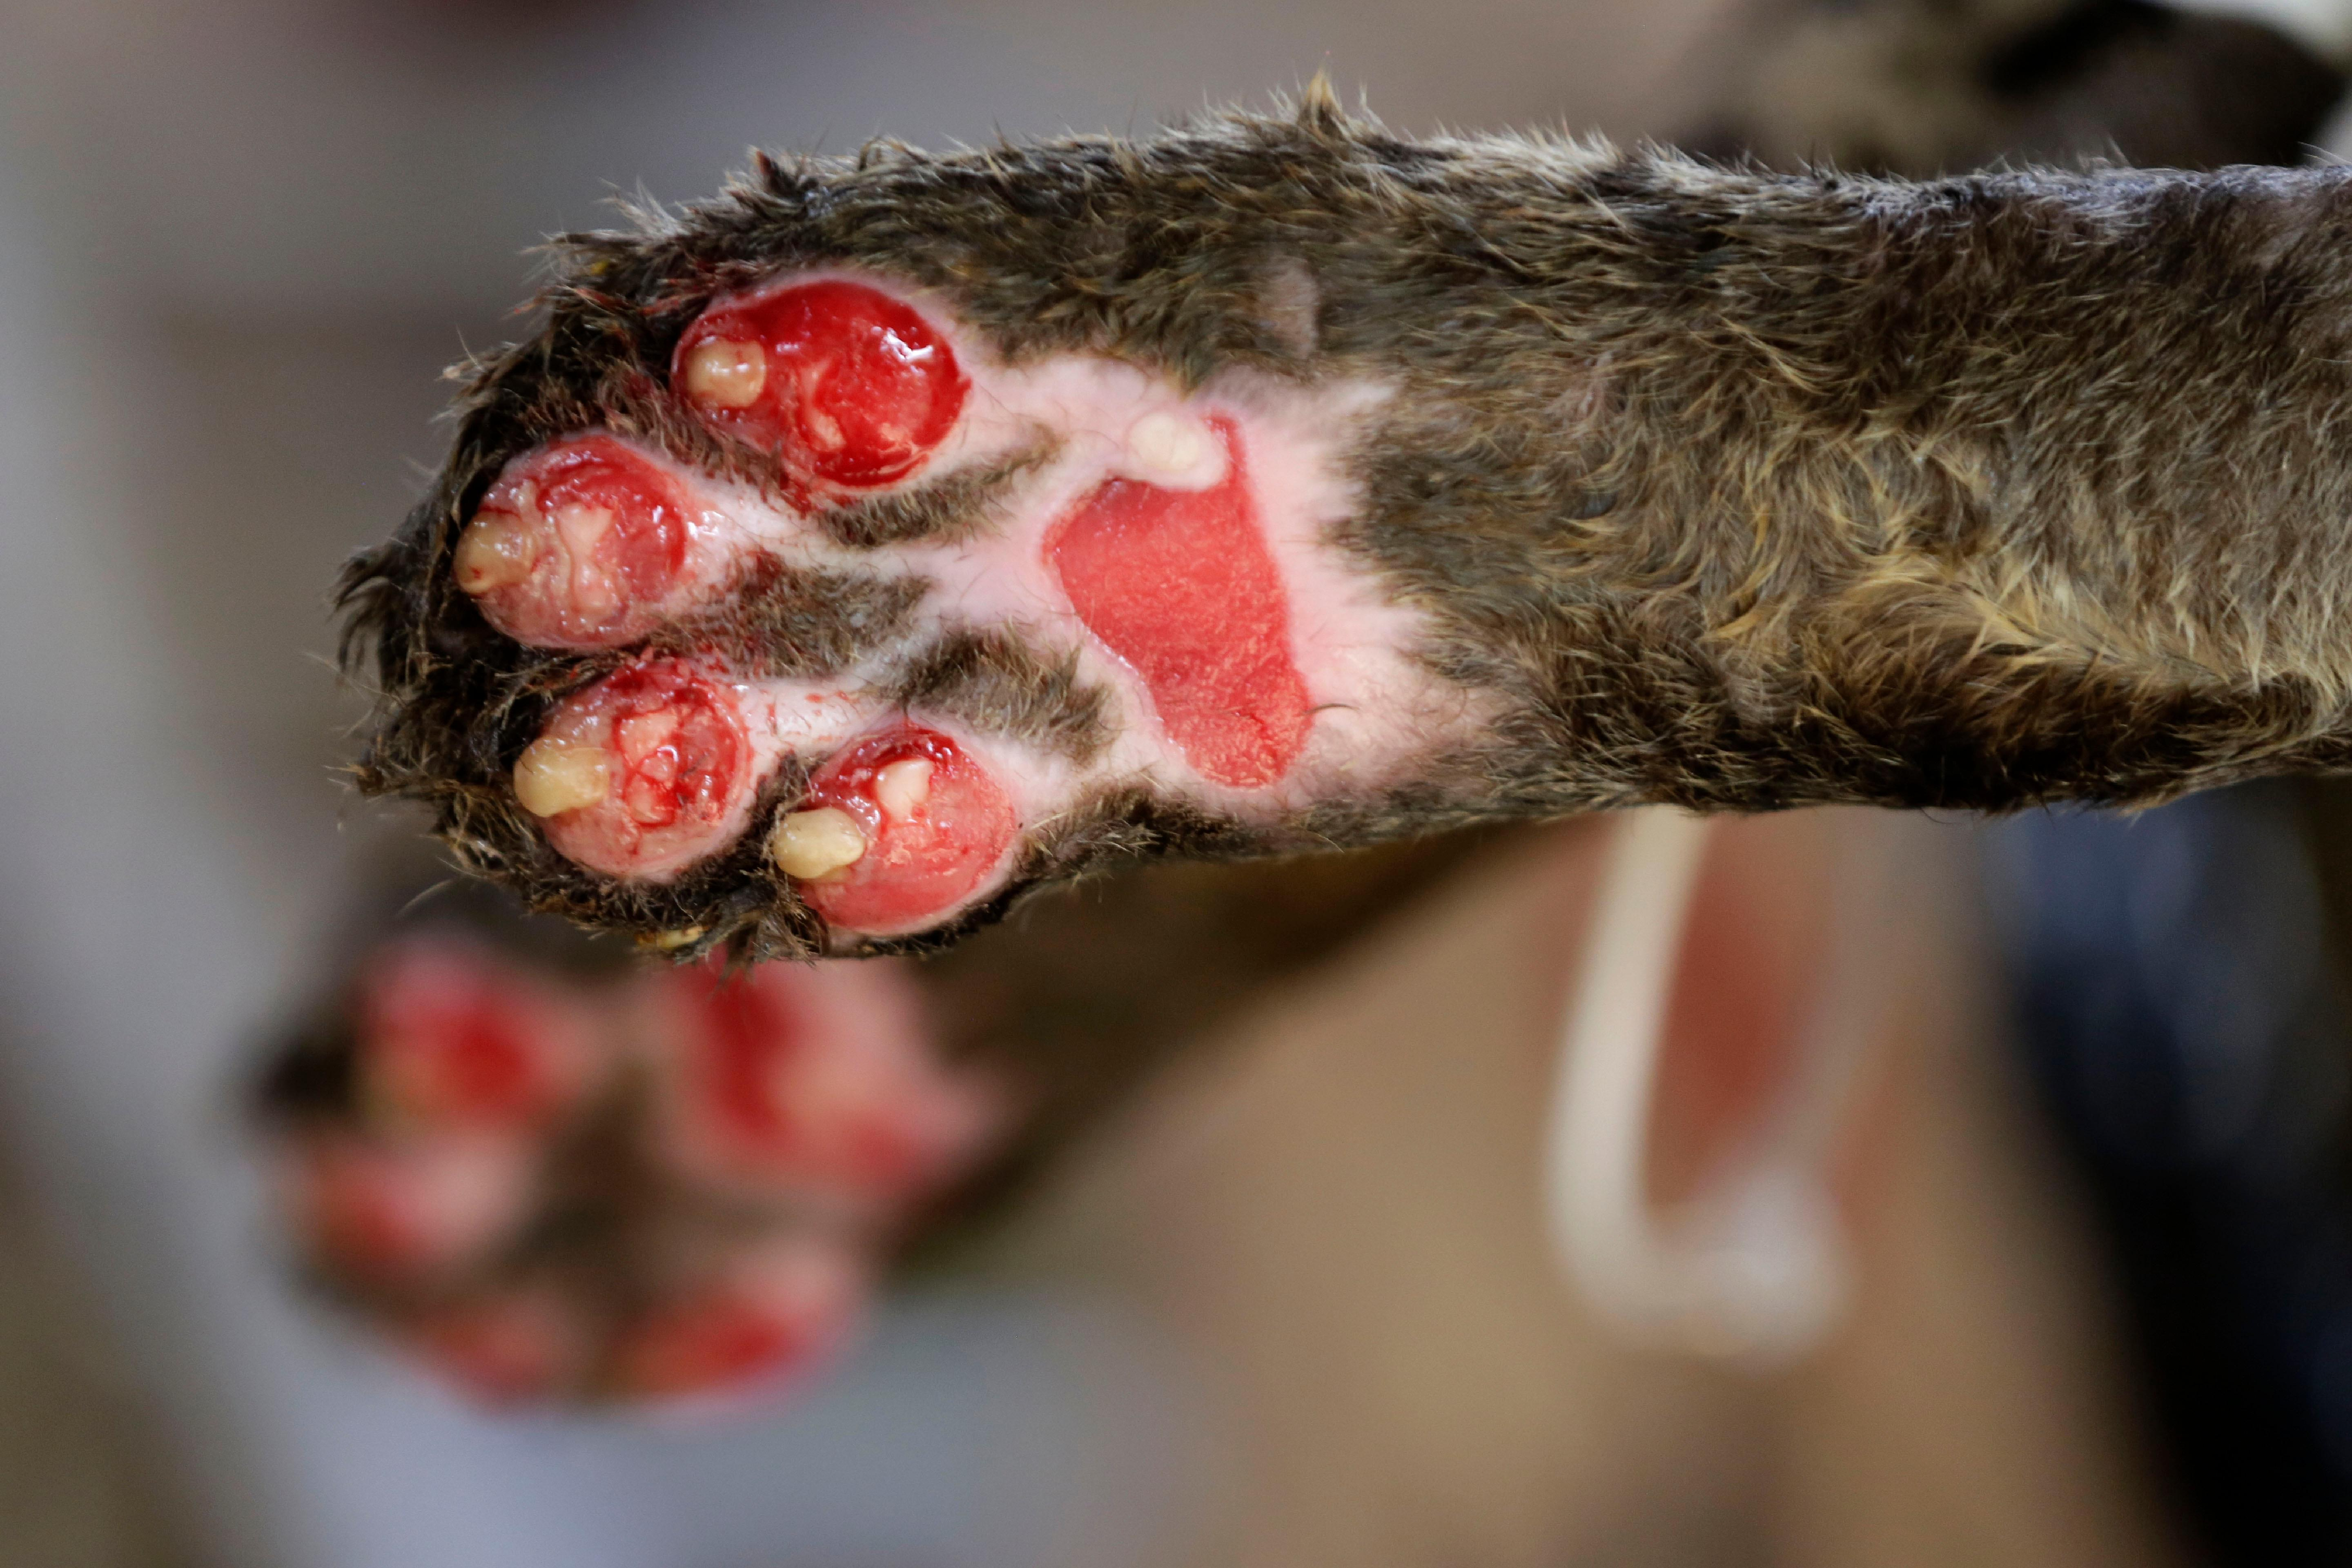 The paws of a Jaguar named Amanaci, who suffered third-degree burns during the fires in the Pantanal region, are shown in detail at the headquarters of Nex Felinos, an NGO aimed at defending endangered wild cats, in the city of Corumba, Goias state, Brazil, Sunday, Sept. 27, 2020. Two Jaguars, a male and a female, were rescued from the great Pantanal fire and are receiving treatment with laser, ozone therapies and cell injections to hasten recovery of burned tissue. (AP Photo/Eraldo Peres)